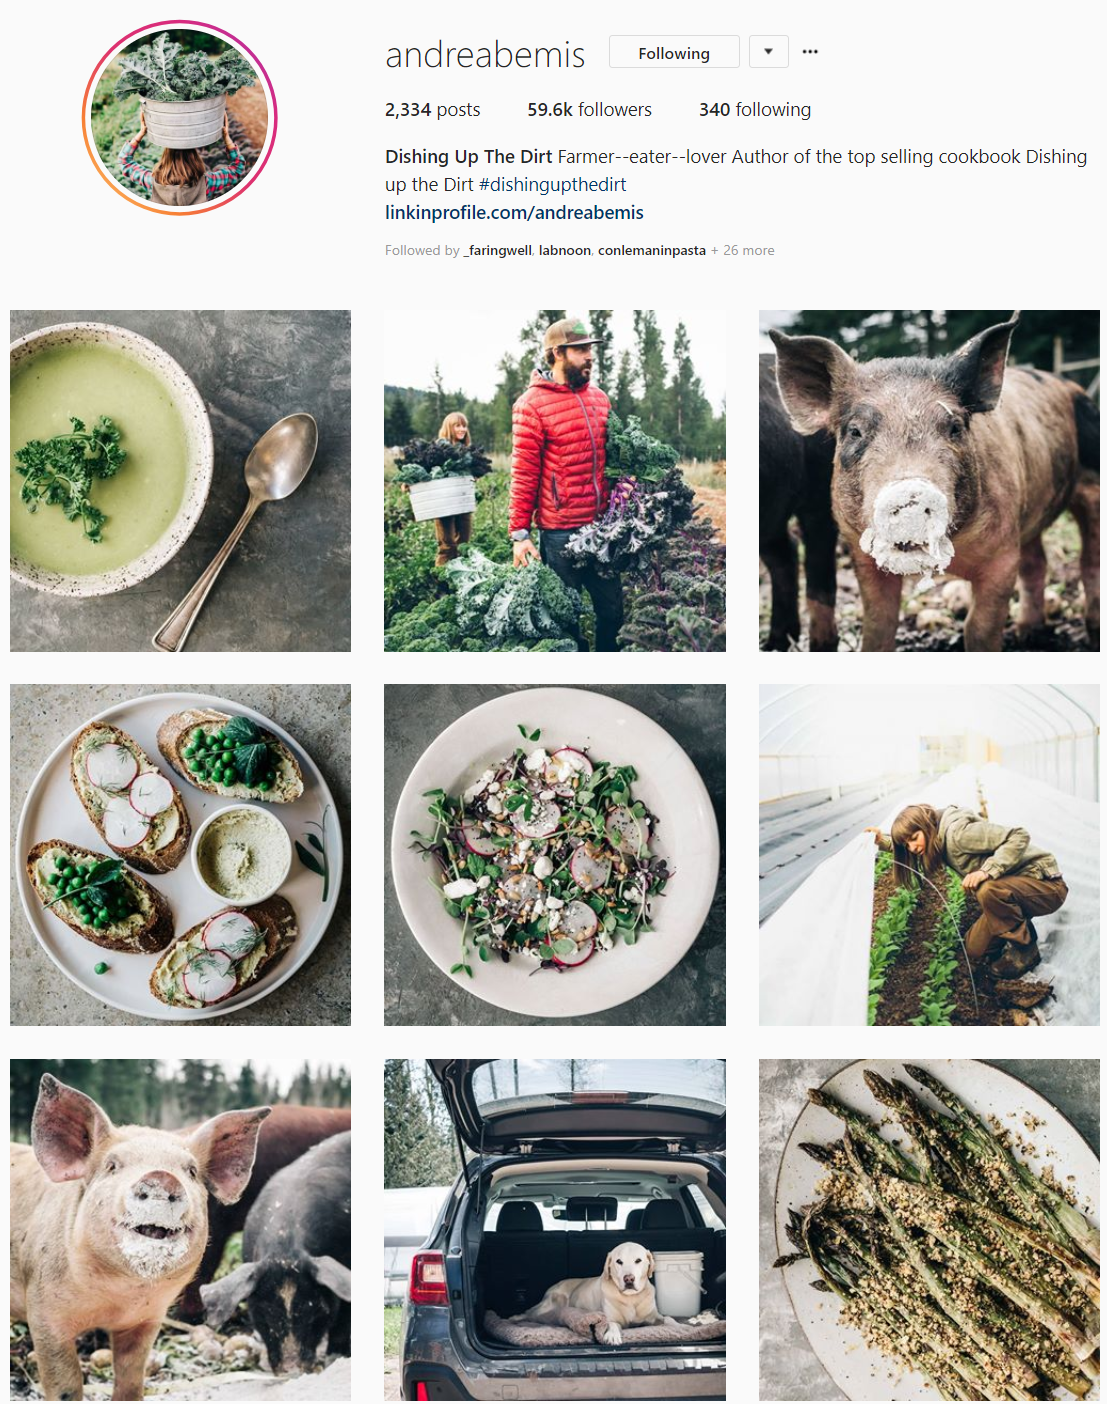 - ANDREA BEMIS is the account of Andrea, one of the best ten food blogger in the world. She and her husband make perfect simple dishes, full of colors and super healthy. Enjoy!